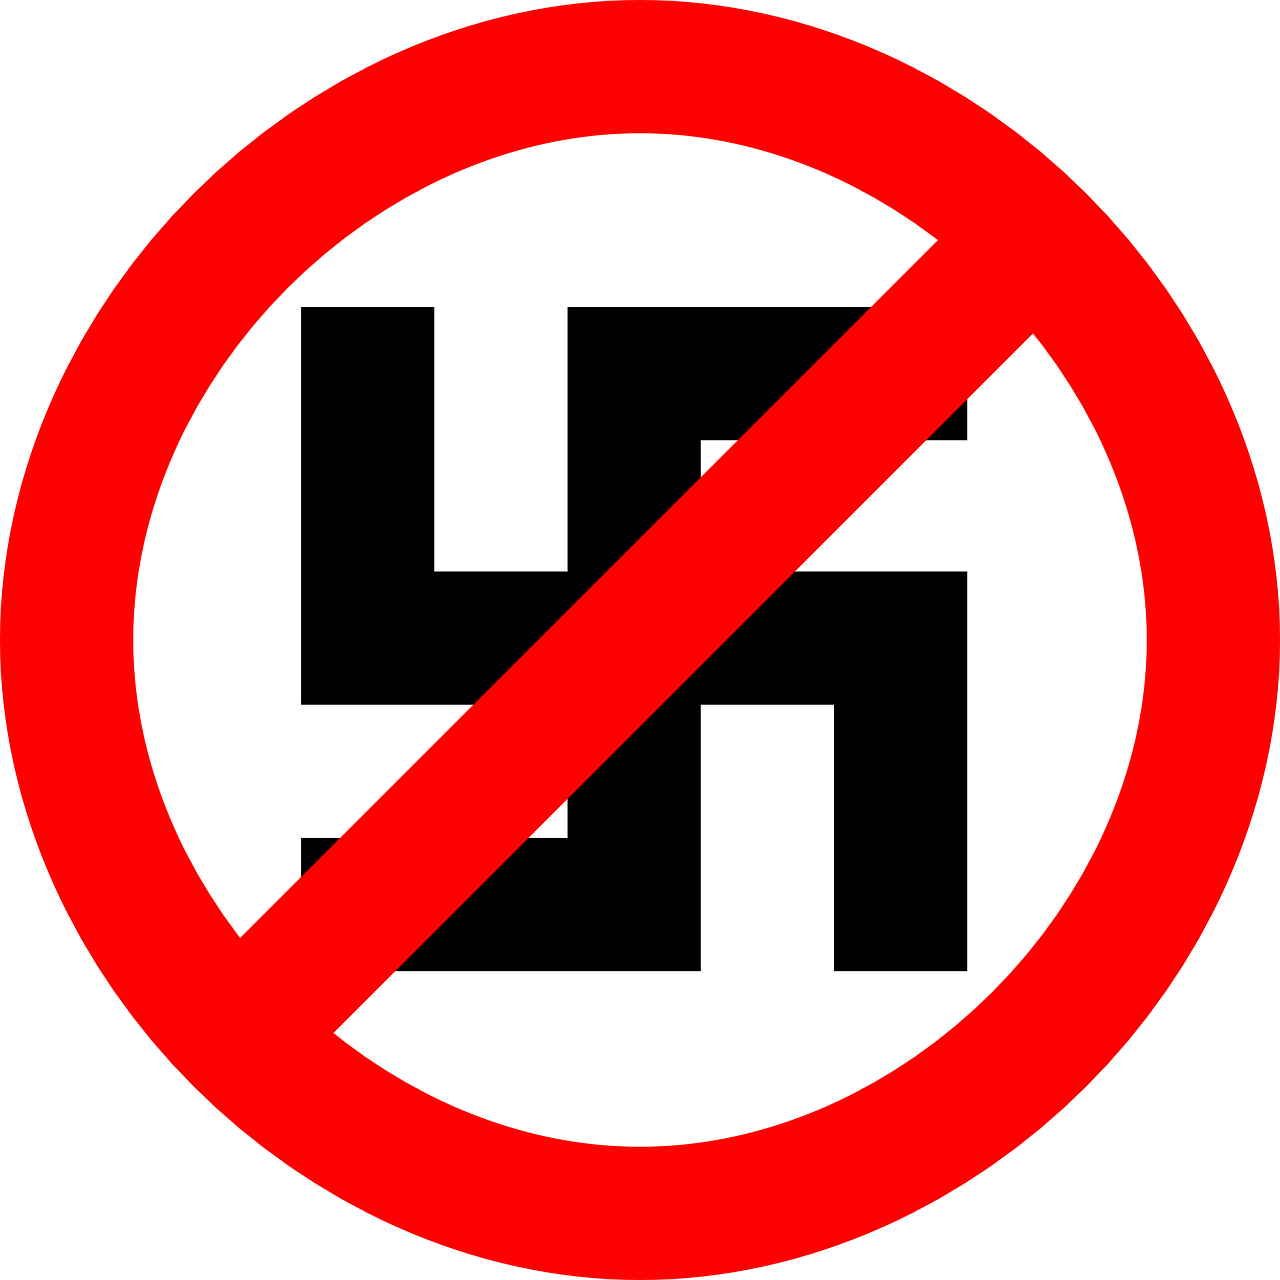 swastika,nazis,symbols,logo,anti,crossed,history,germany,german,genocide,nazi,flag,concentration,holocaust,memory,jew,museum,russia,hitler,symbolic,fascism,cross,socialism,hatred,death,murder,adolf hitler,state flag,against,fascist,oppose,free vector graphics,free pictures, free photos, free images, royalty free, free illustrations, public domain